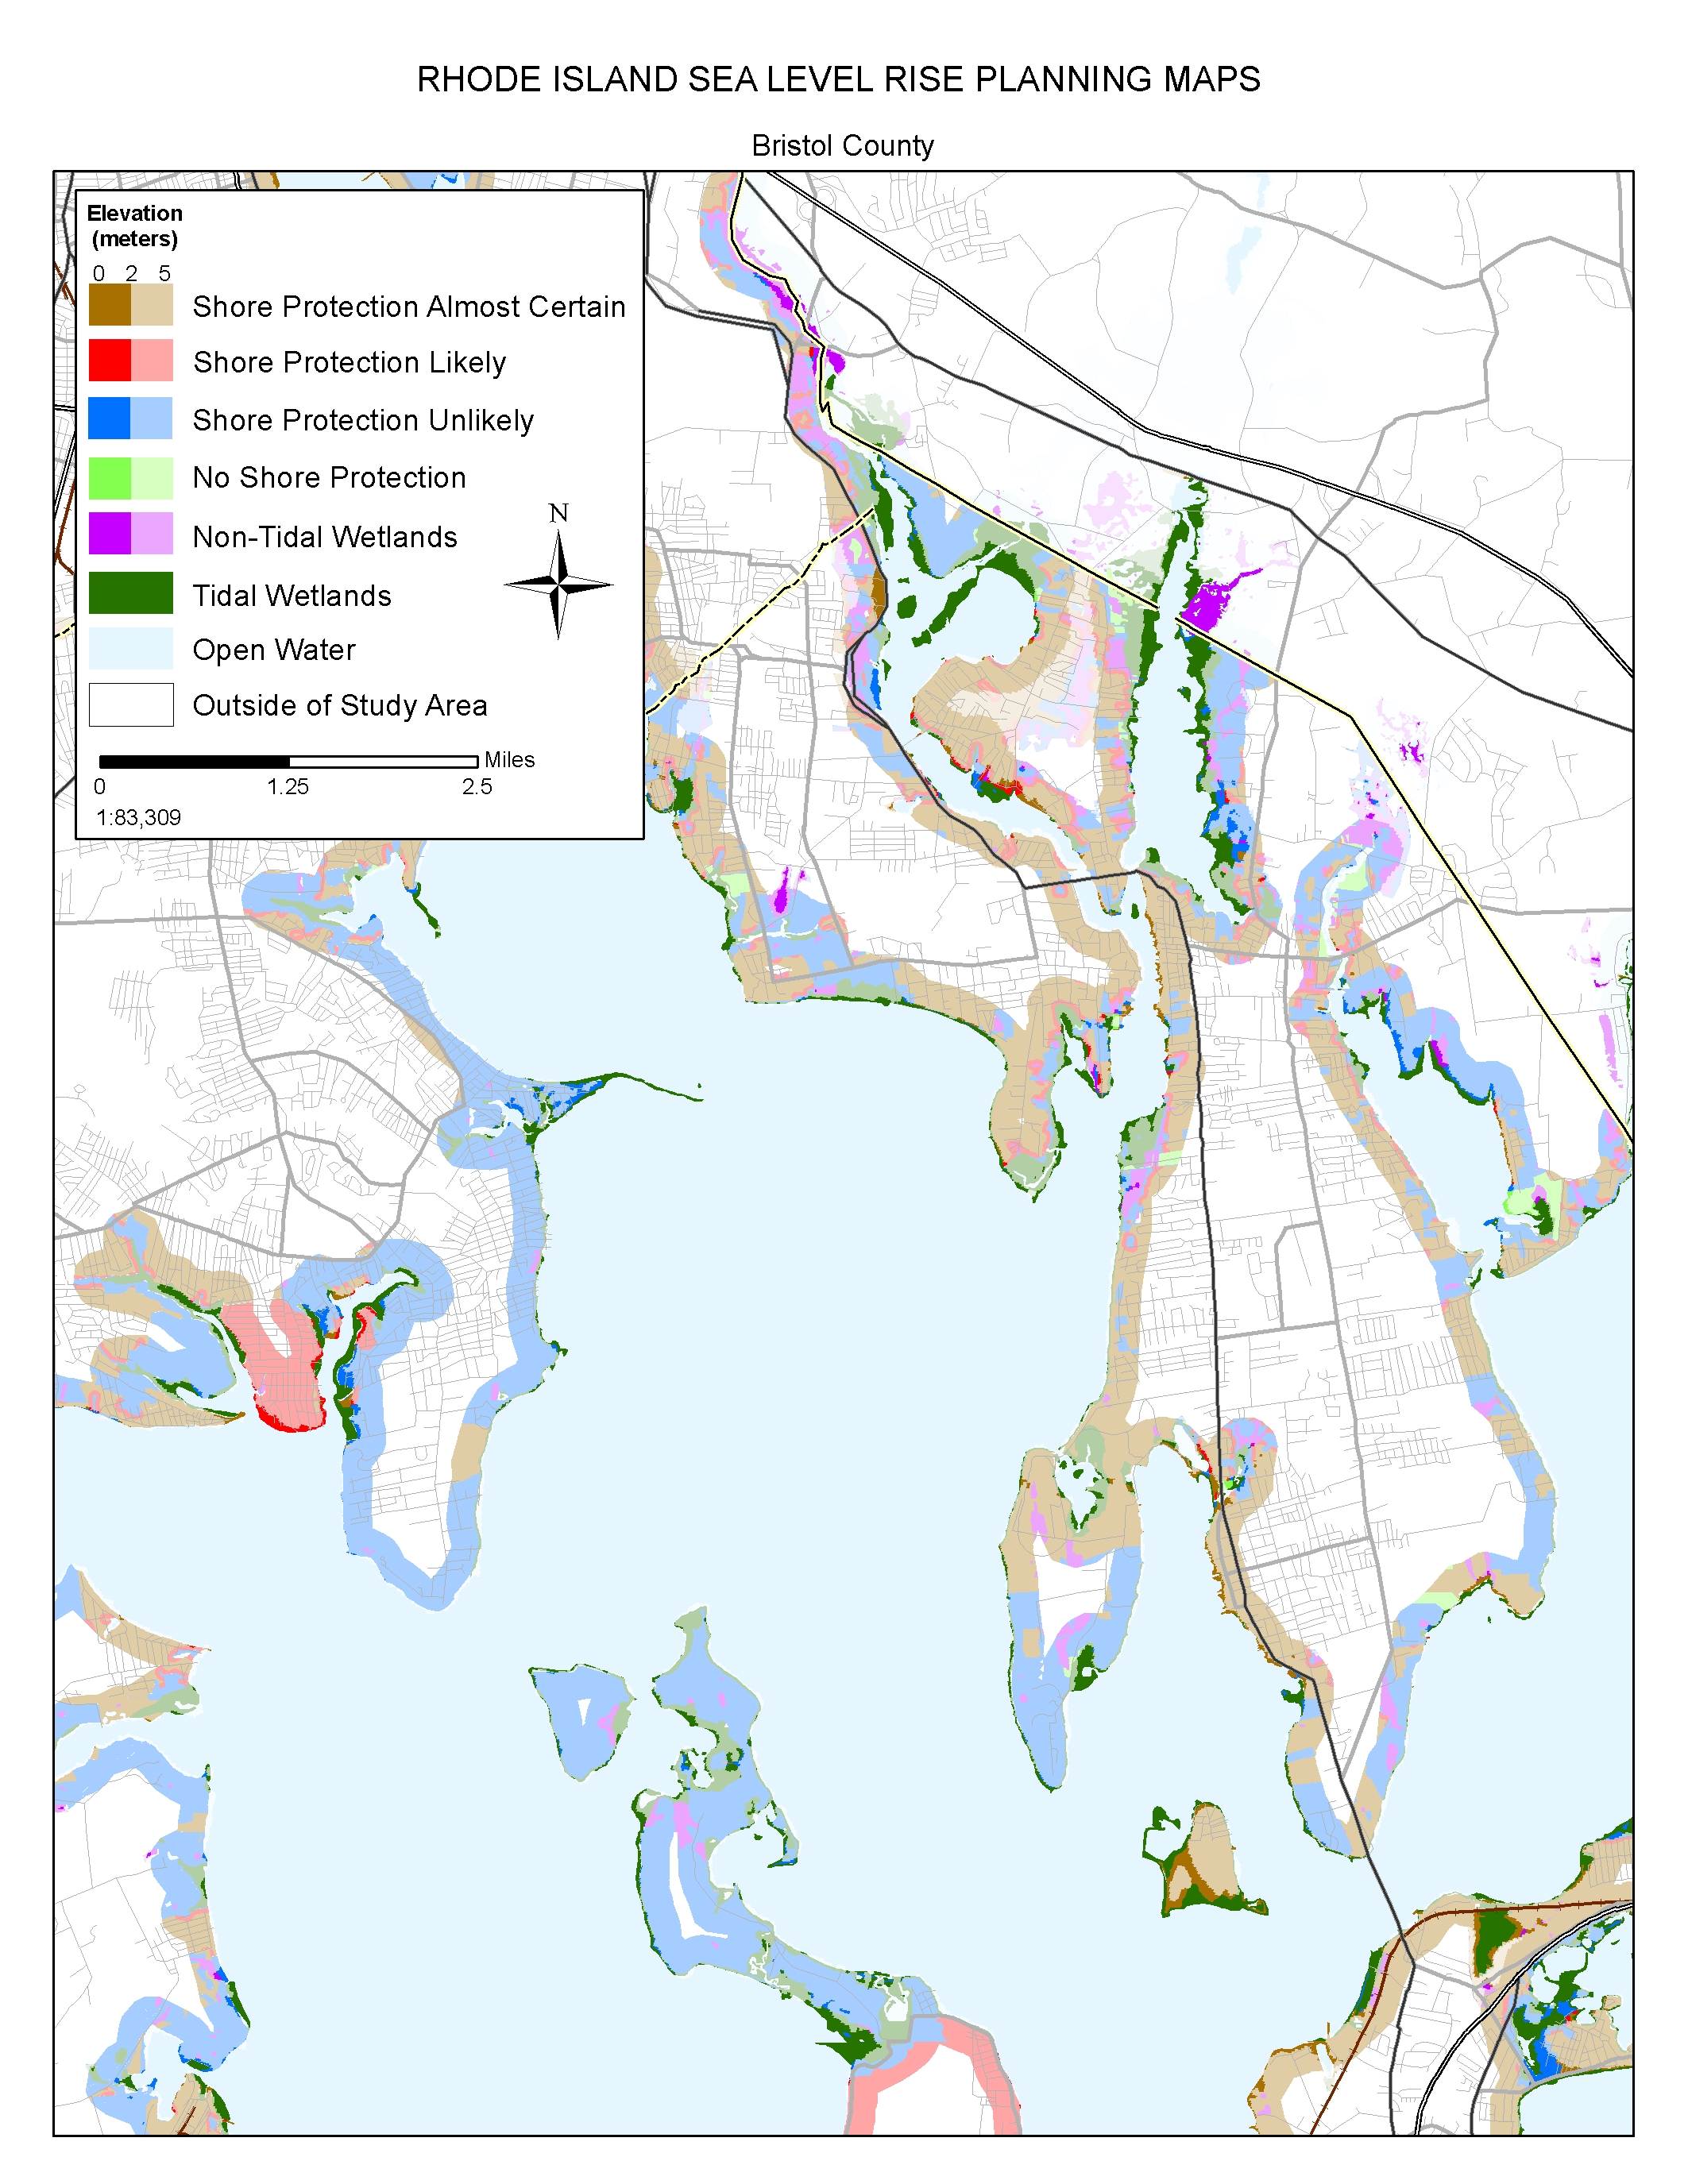 Sea Level Rise Planning Maps Likelihood Of Shore Protection In - Rhode island county map